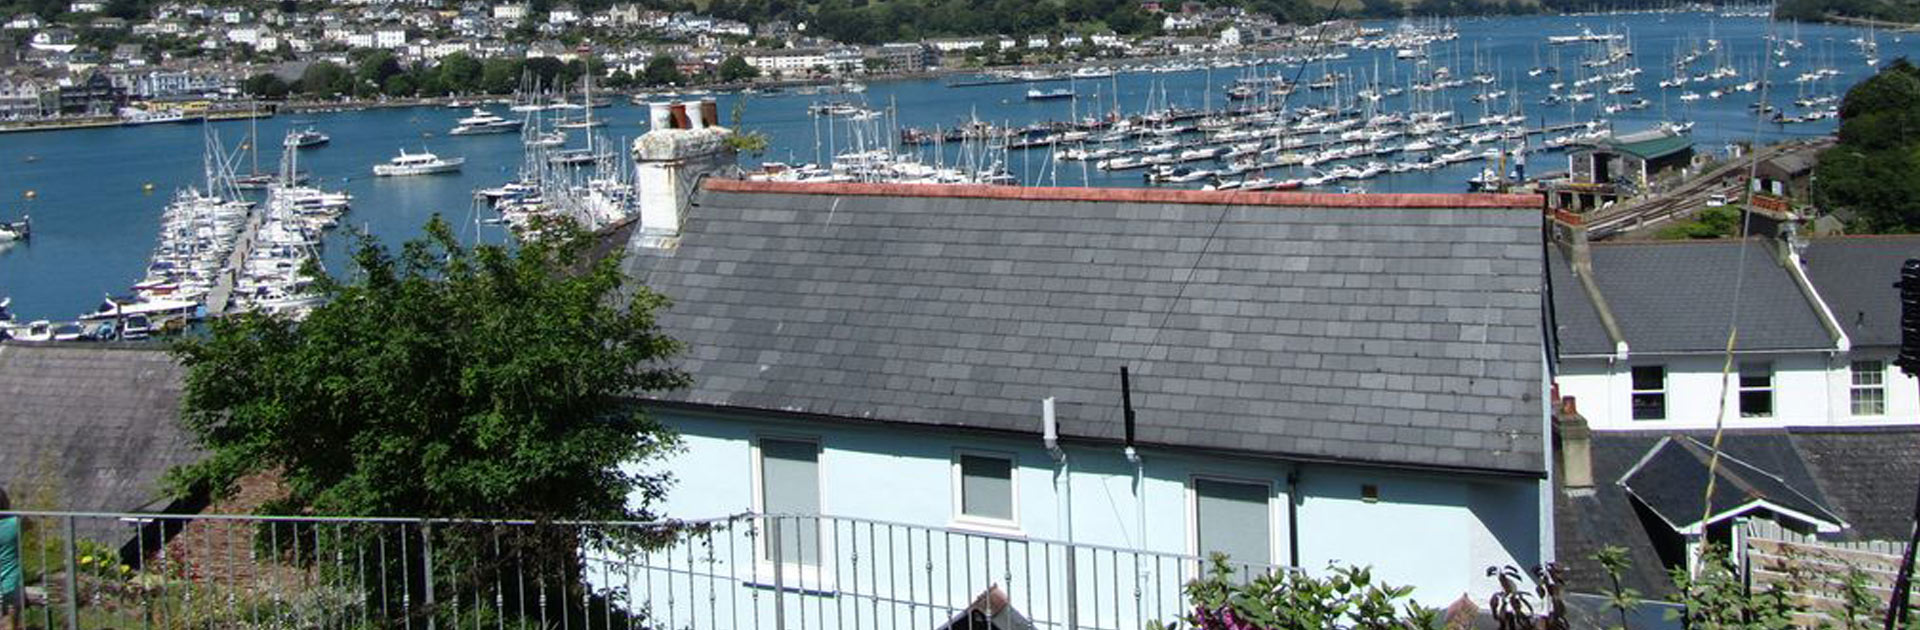 View Over Chapel House and Rooftops